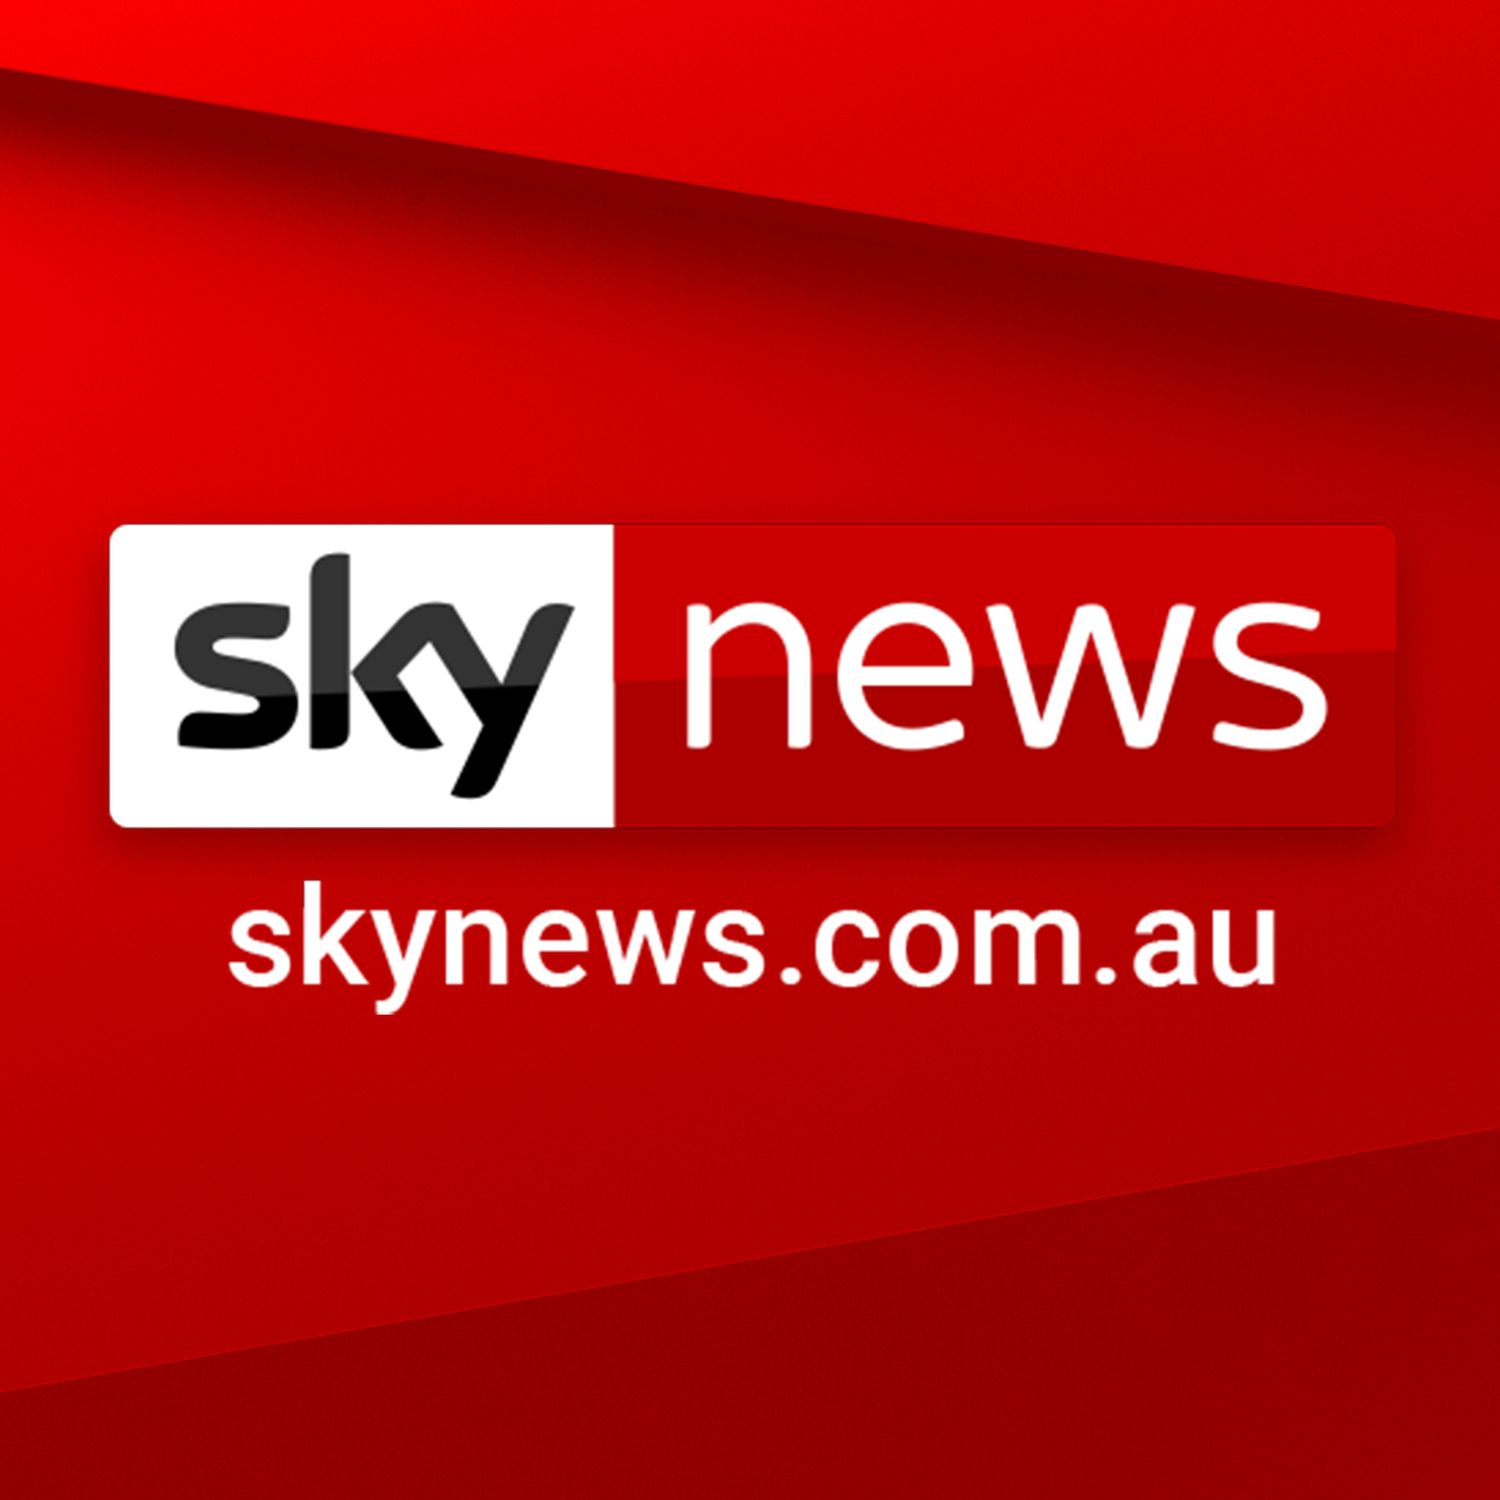 Sky News - News Bulletin (Google Home)